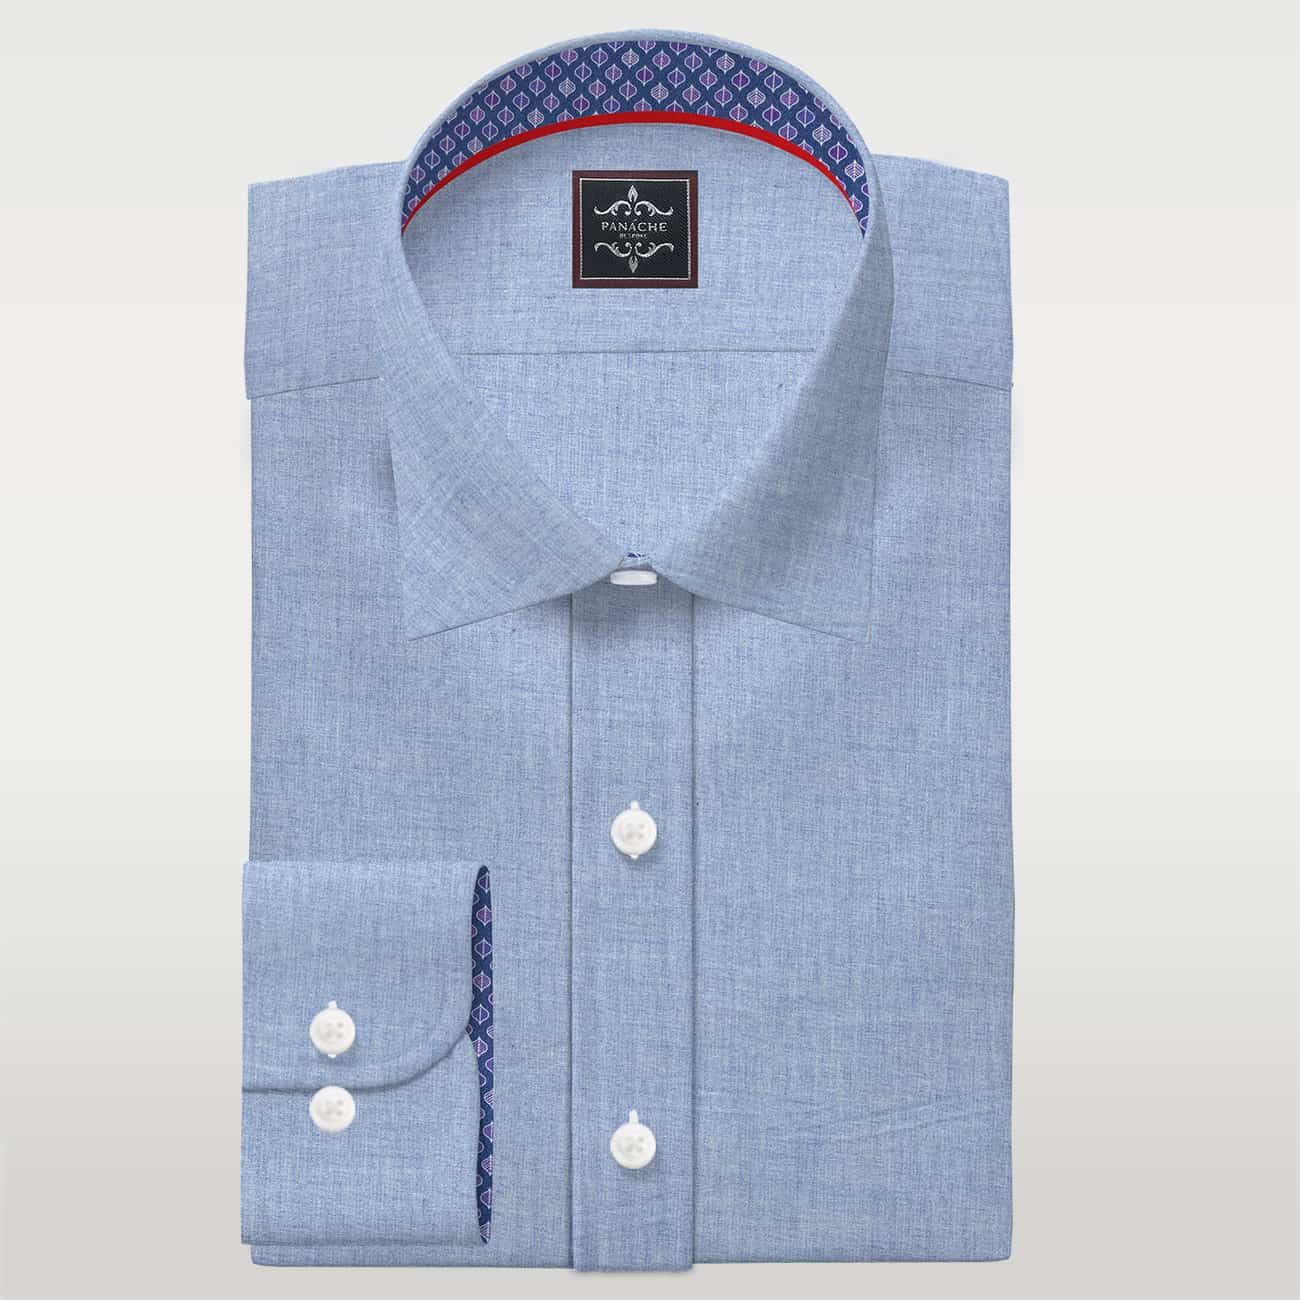 Wool Blend Flannel light Blue Shirt | Flannel shirts